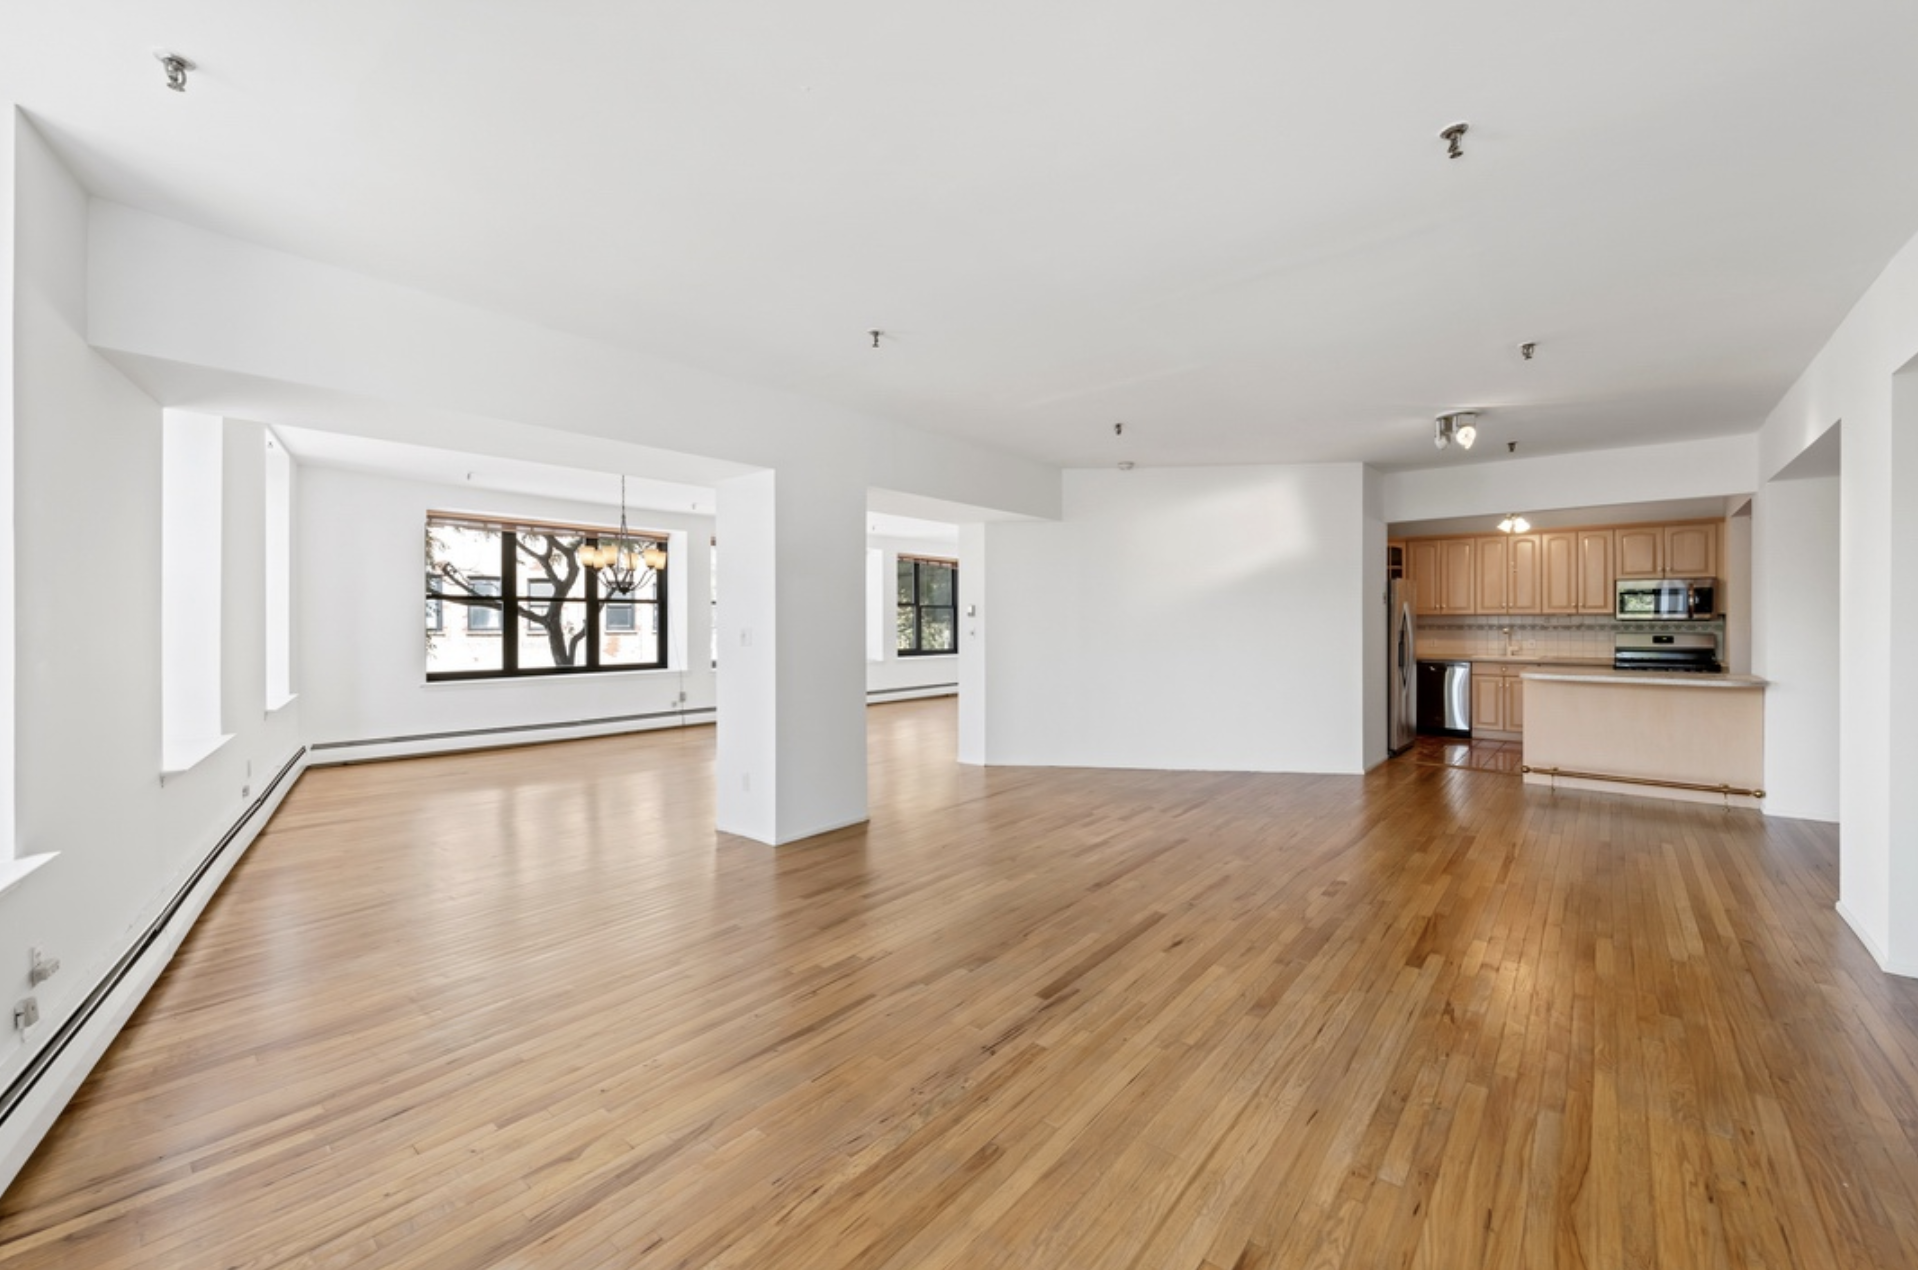 166 BANK STREET, 2B - $2,699,000 // 3 Beds // 2 Baths // 2,400 SQFTWelcome to this beautiful, spacious, airy and bright loft-like gem in prime West Village. Move right in, or create your dream home. Currently setup as a 1 bedroom, 2 bathroom with wide open living and dining areas with bountiful windows and natural light. Easily converted into a 2 or 3 bedroom apartment.